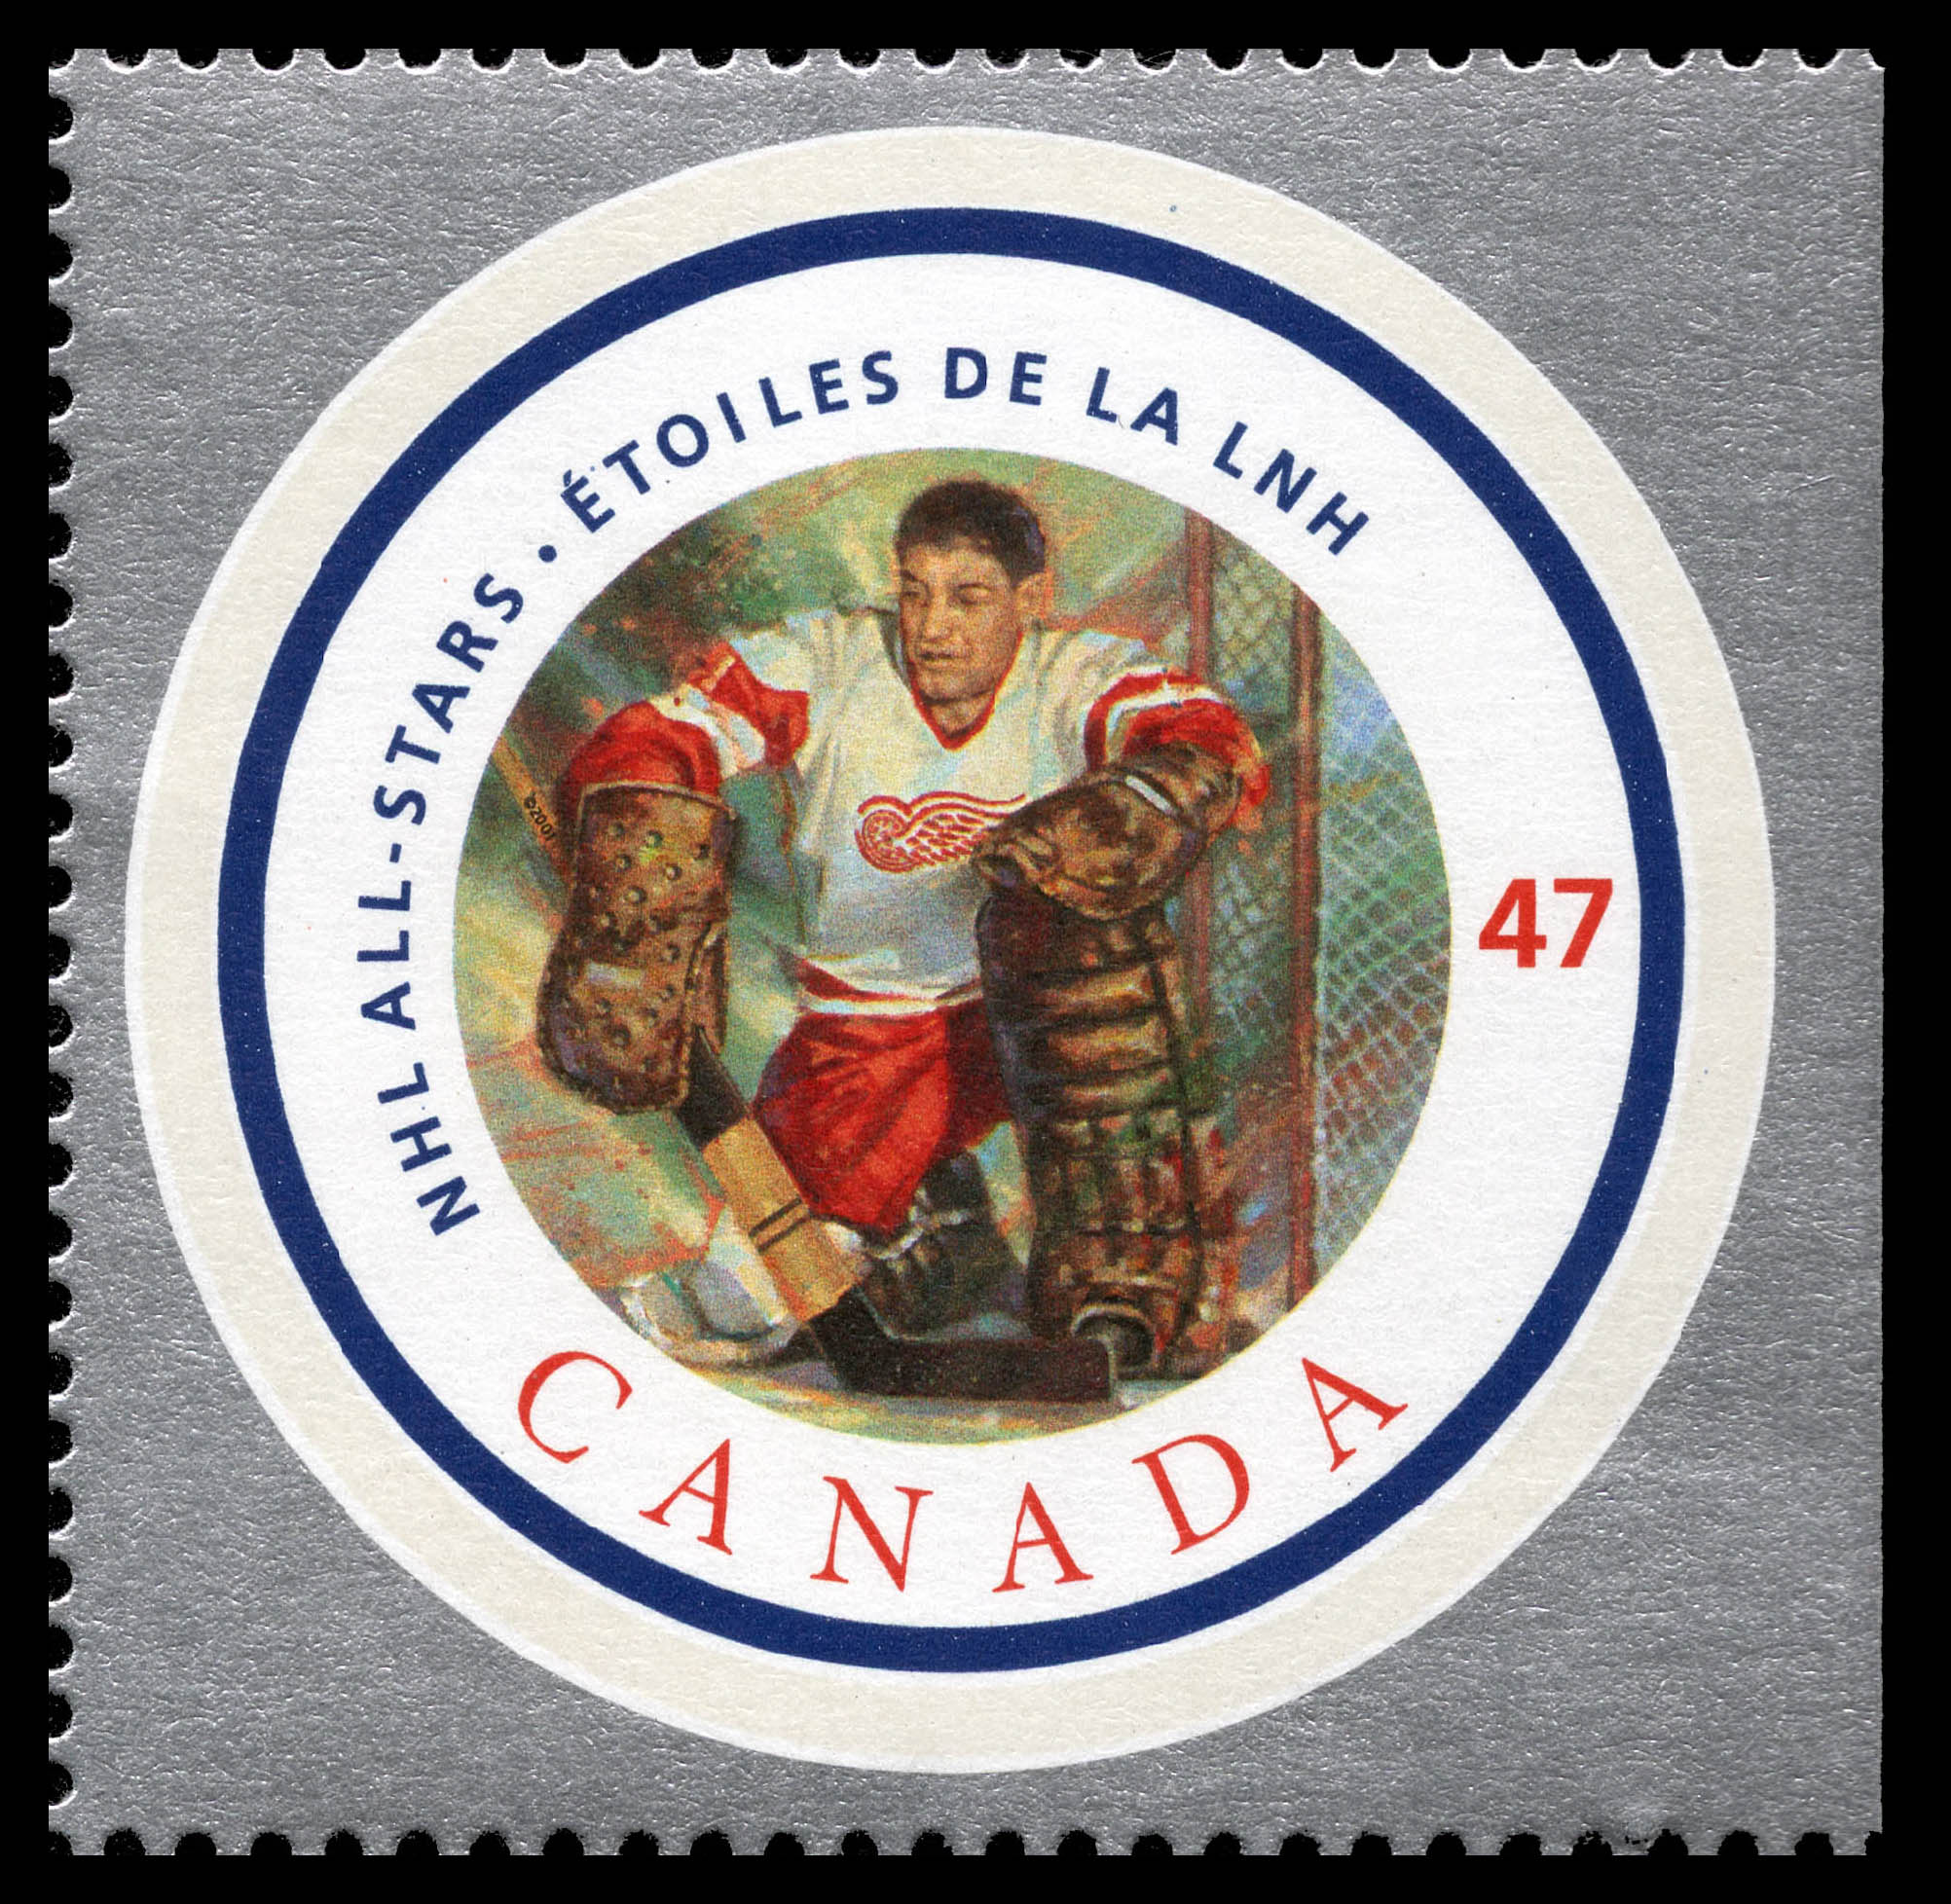 Terry Sawchuk Canada Postage Stamp | NHL All-Stars